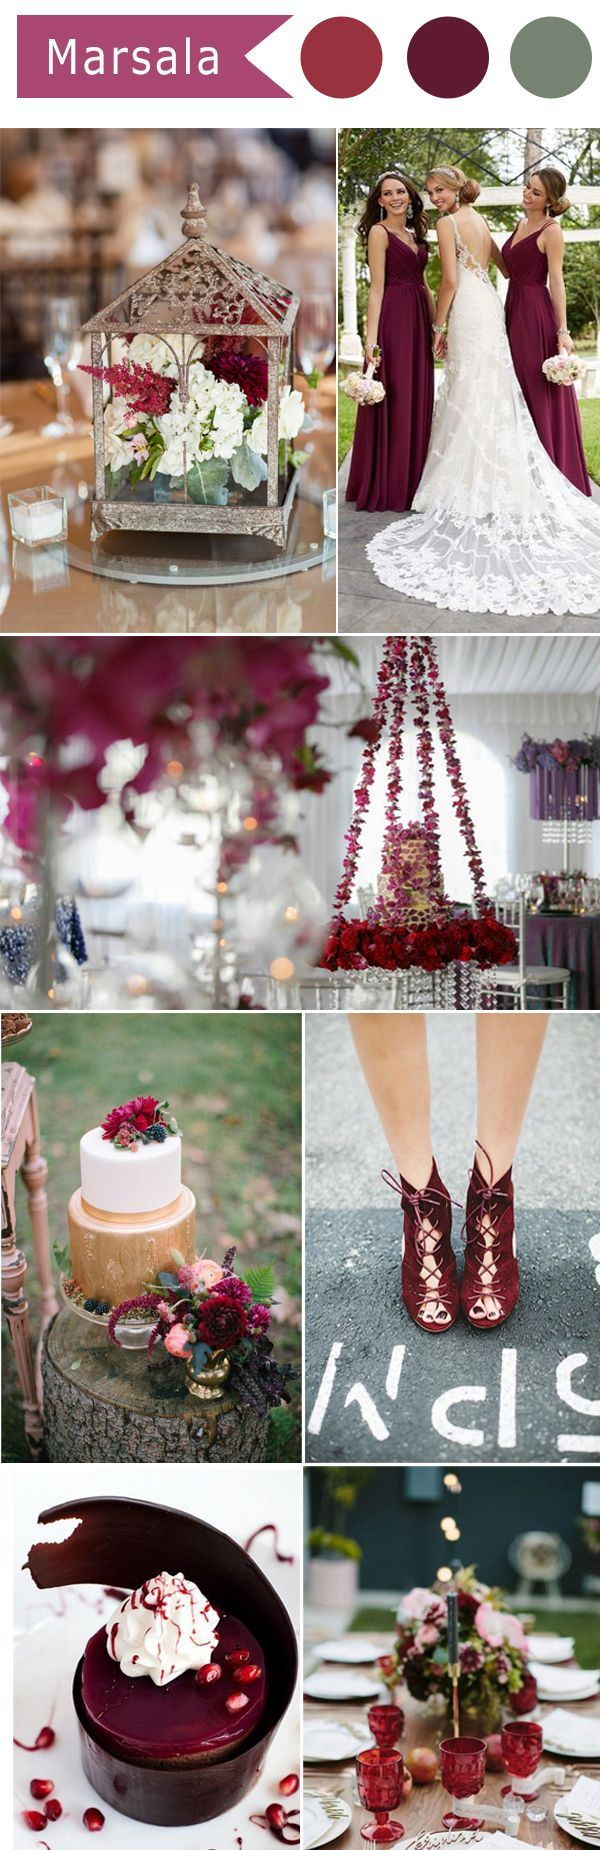 The beautiful shade of Marsala makes for a lovely wedding color palette